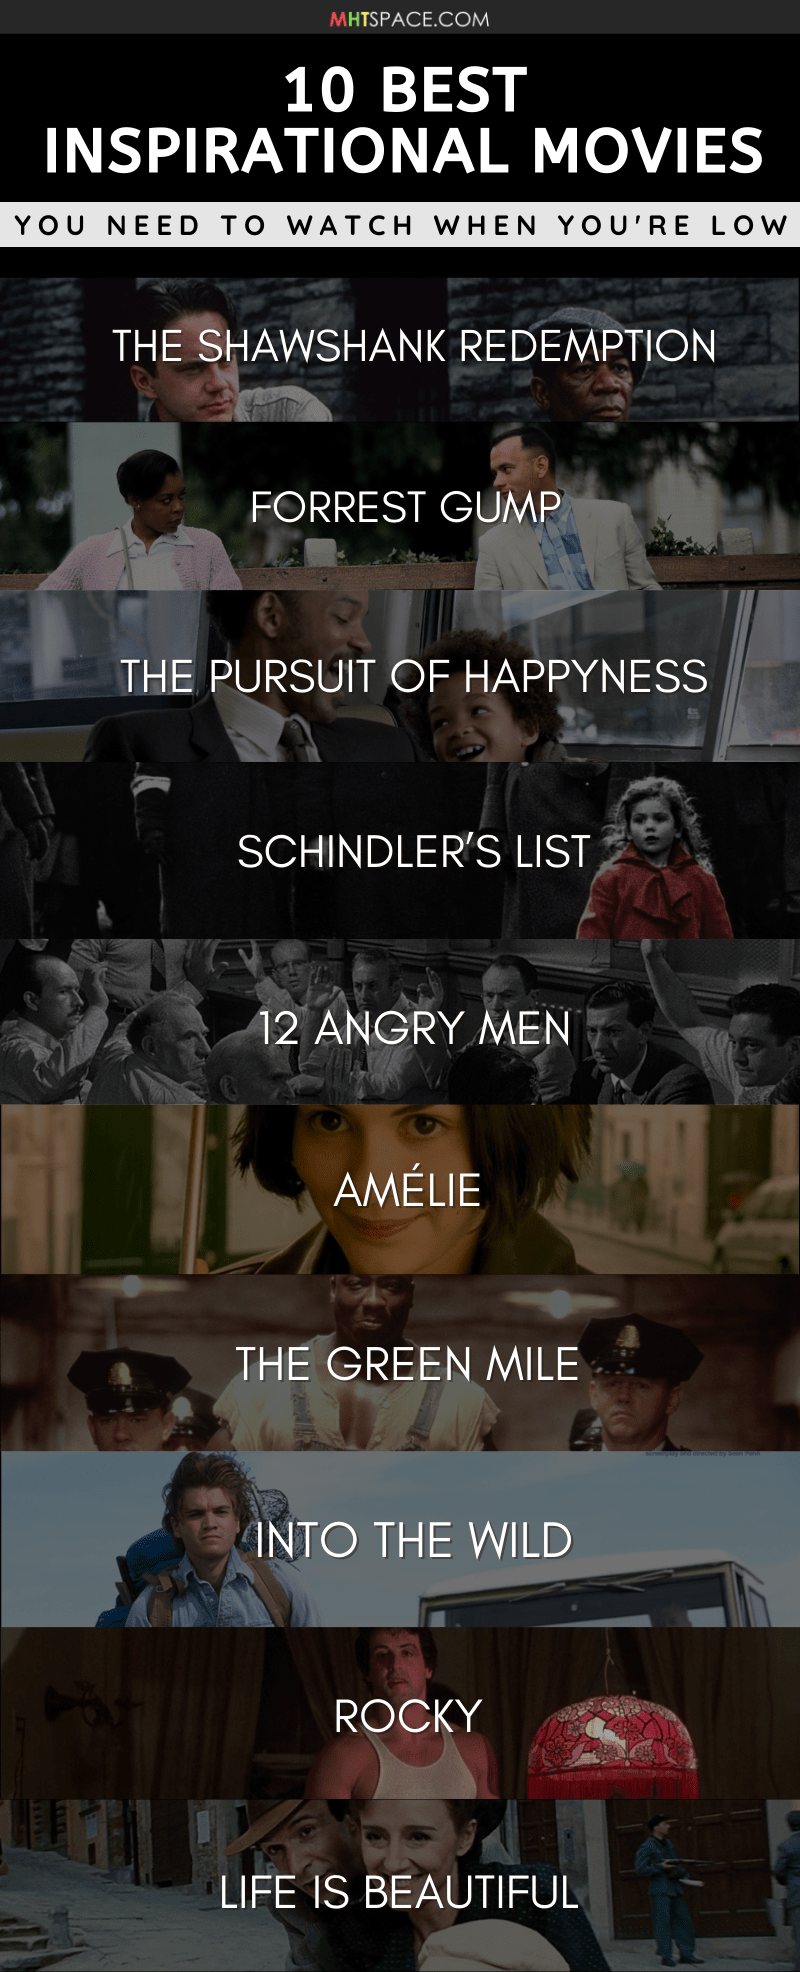 10 Best Inspirational Movies pin